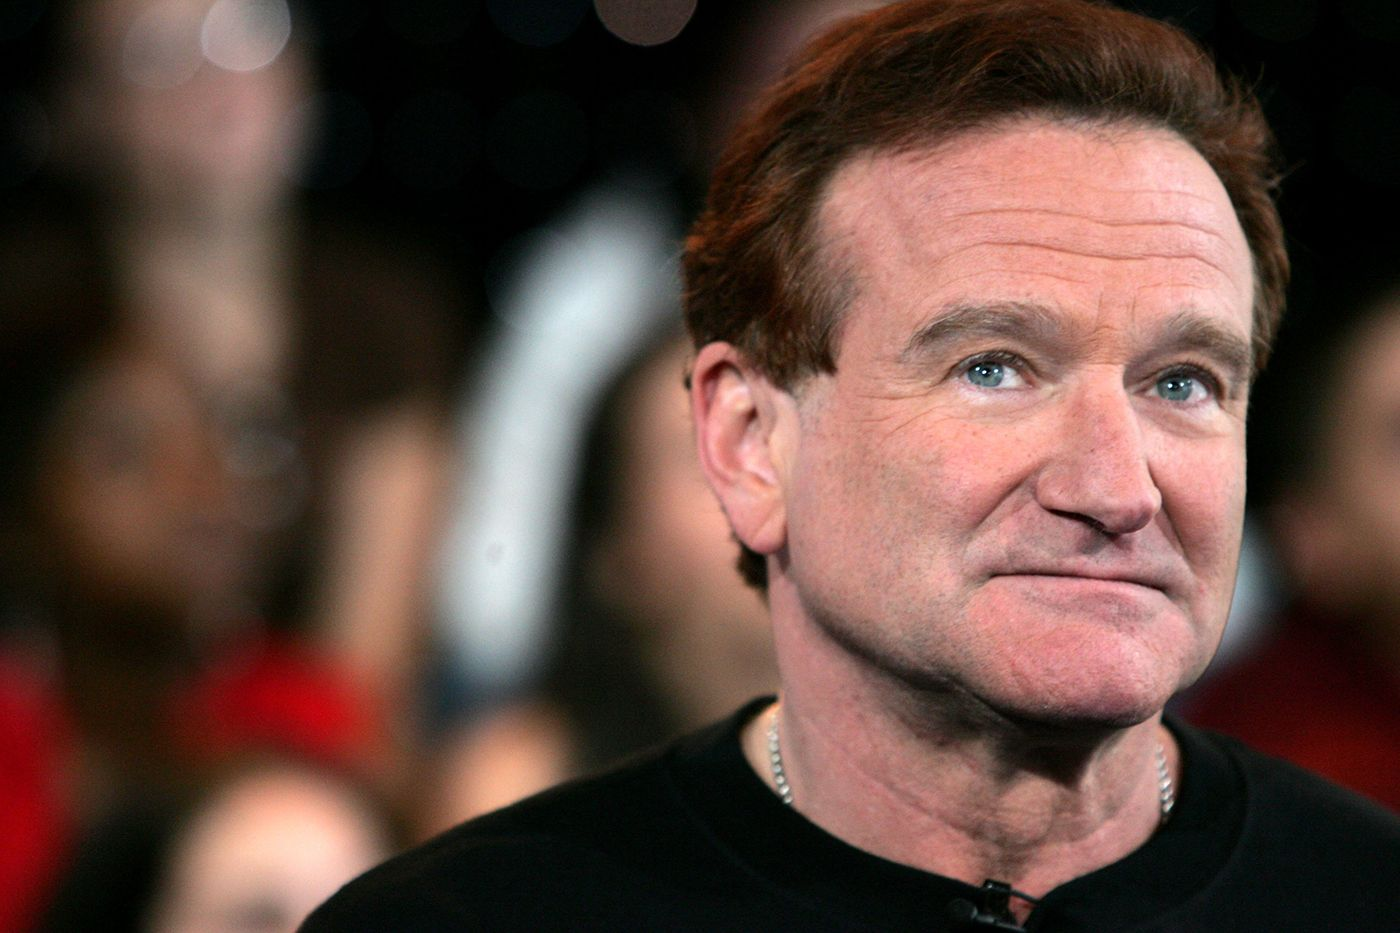 Trailer Arrives For New Documentary About Robin Williams' Battle With Dementia